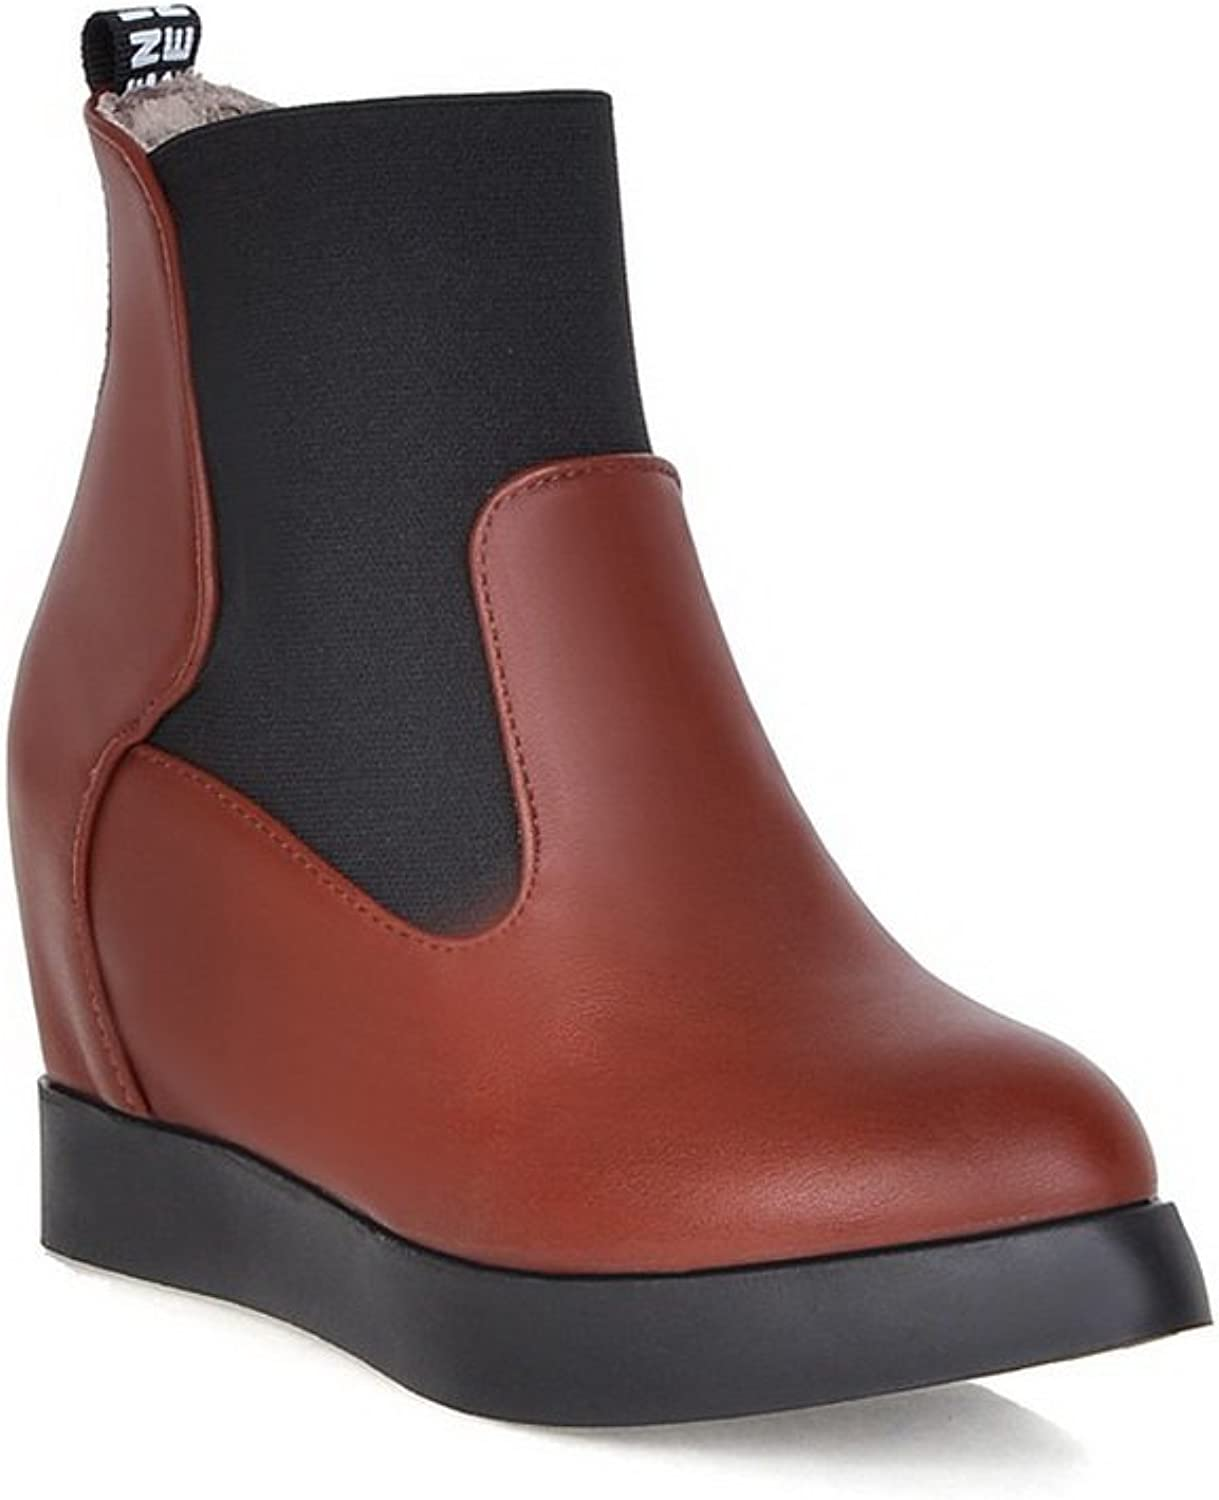 AdeeSu Ladies Heighten Inside Pull-On Platform Imitated Leather Boots